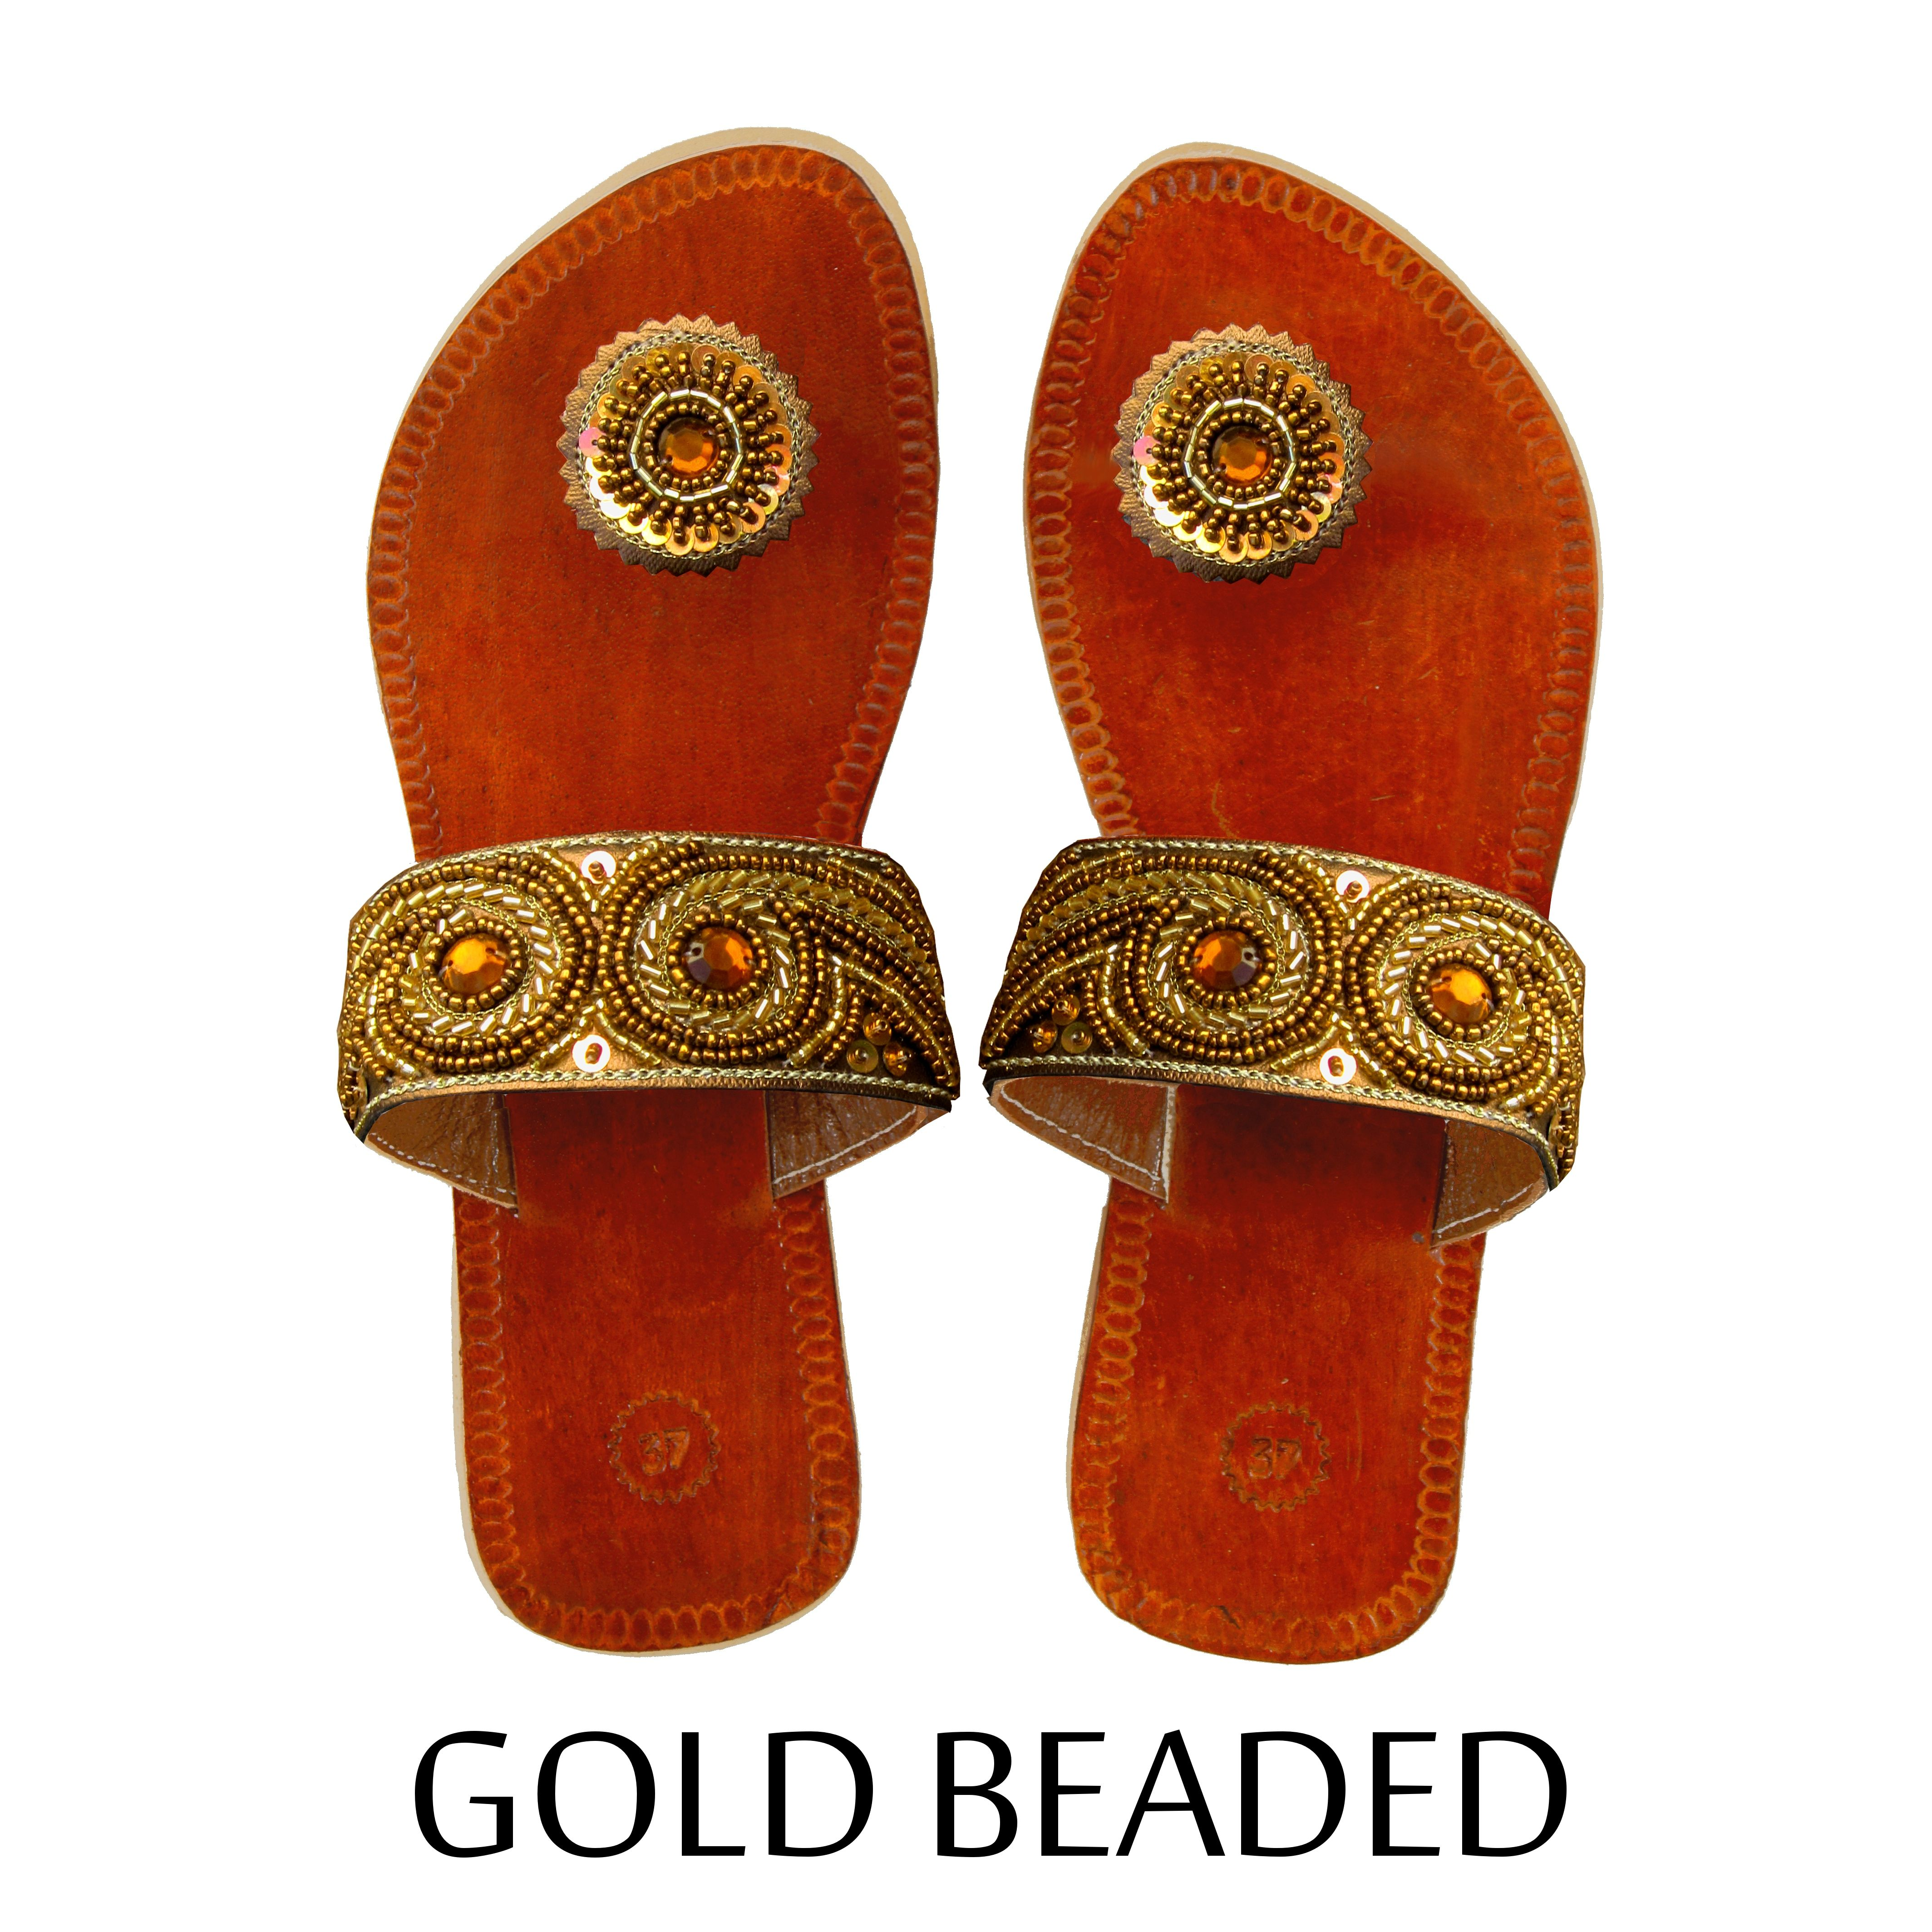 7c9c21600 Gold Beaded Paduka Sandals on sale now for  24.99 on eBay and Amazon with  FREE shipping!